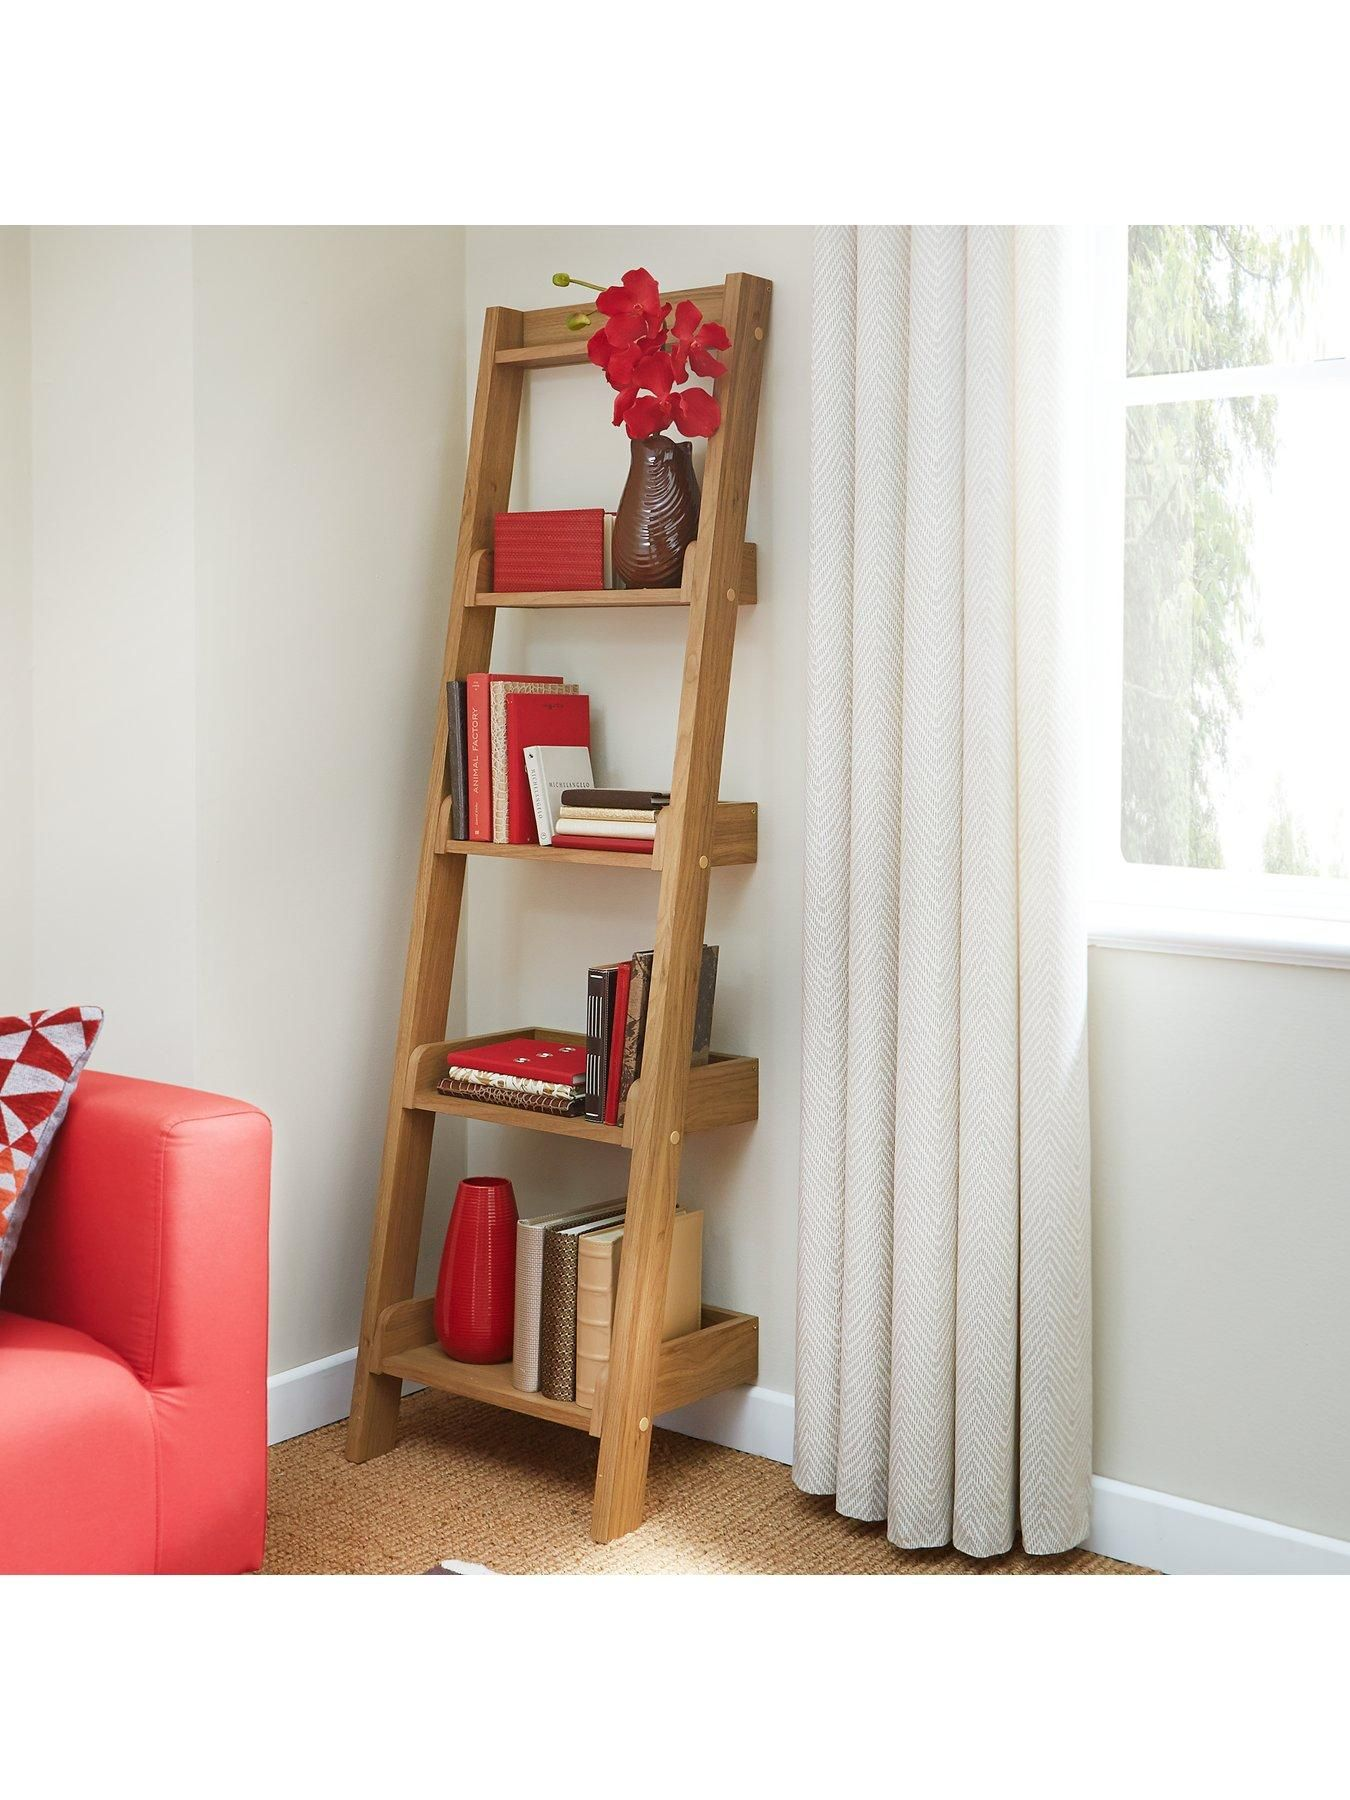 Unbranded Metro Narrow Ladder Shelf Donu0027t Just Display Your Books,  Ornaments And Pictures... Show Them Off Instead! This Contemporary 5 Shelf  Ladder Unit ...